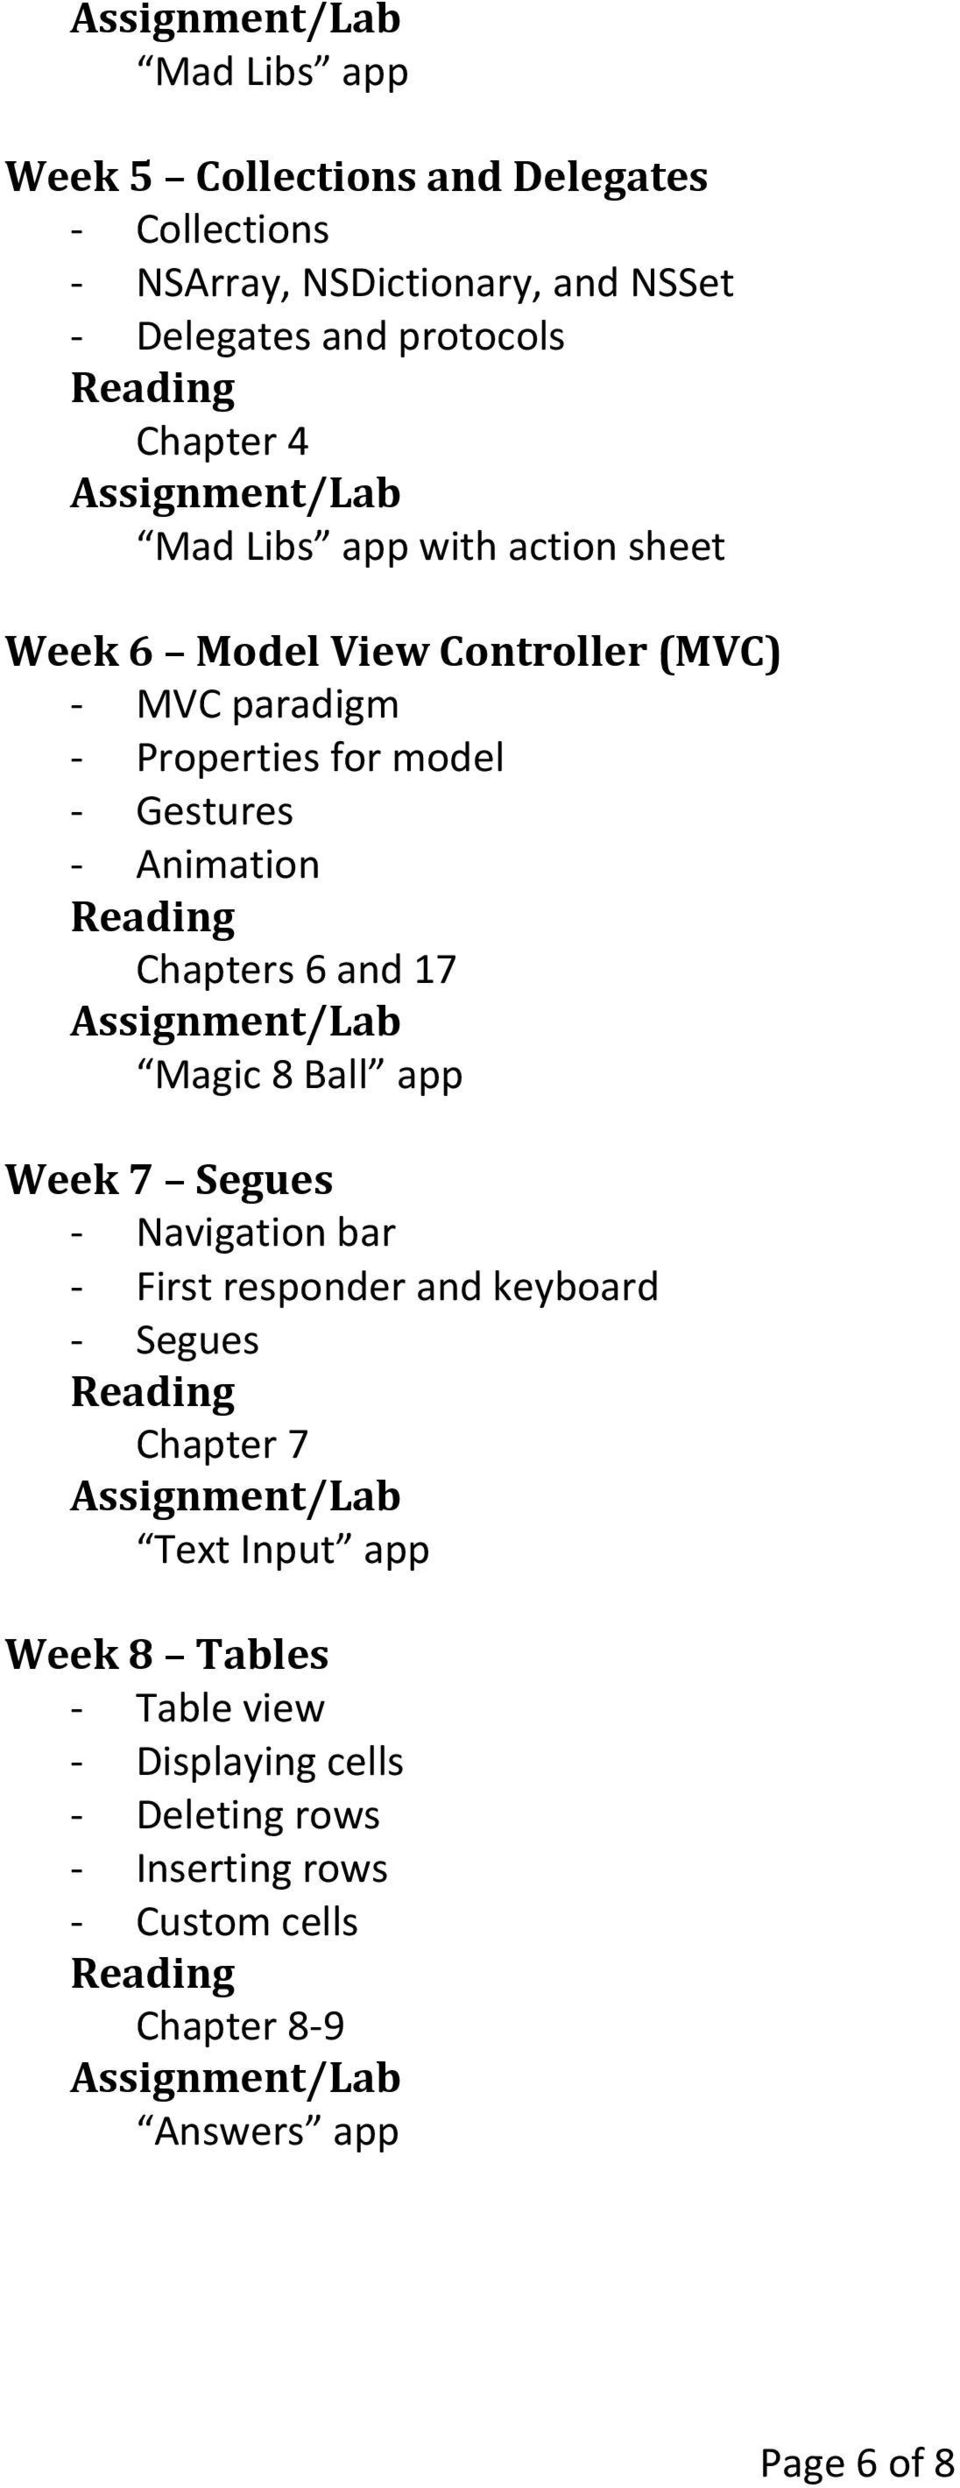 Chapters 6 and 17 Magic 8 Ball app Week 7 Segues - Navigation bar - First responder and keyboard - Segues Chapter 7 Text Input